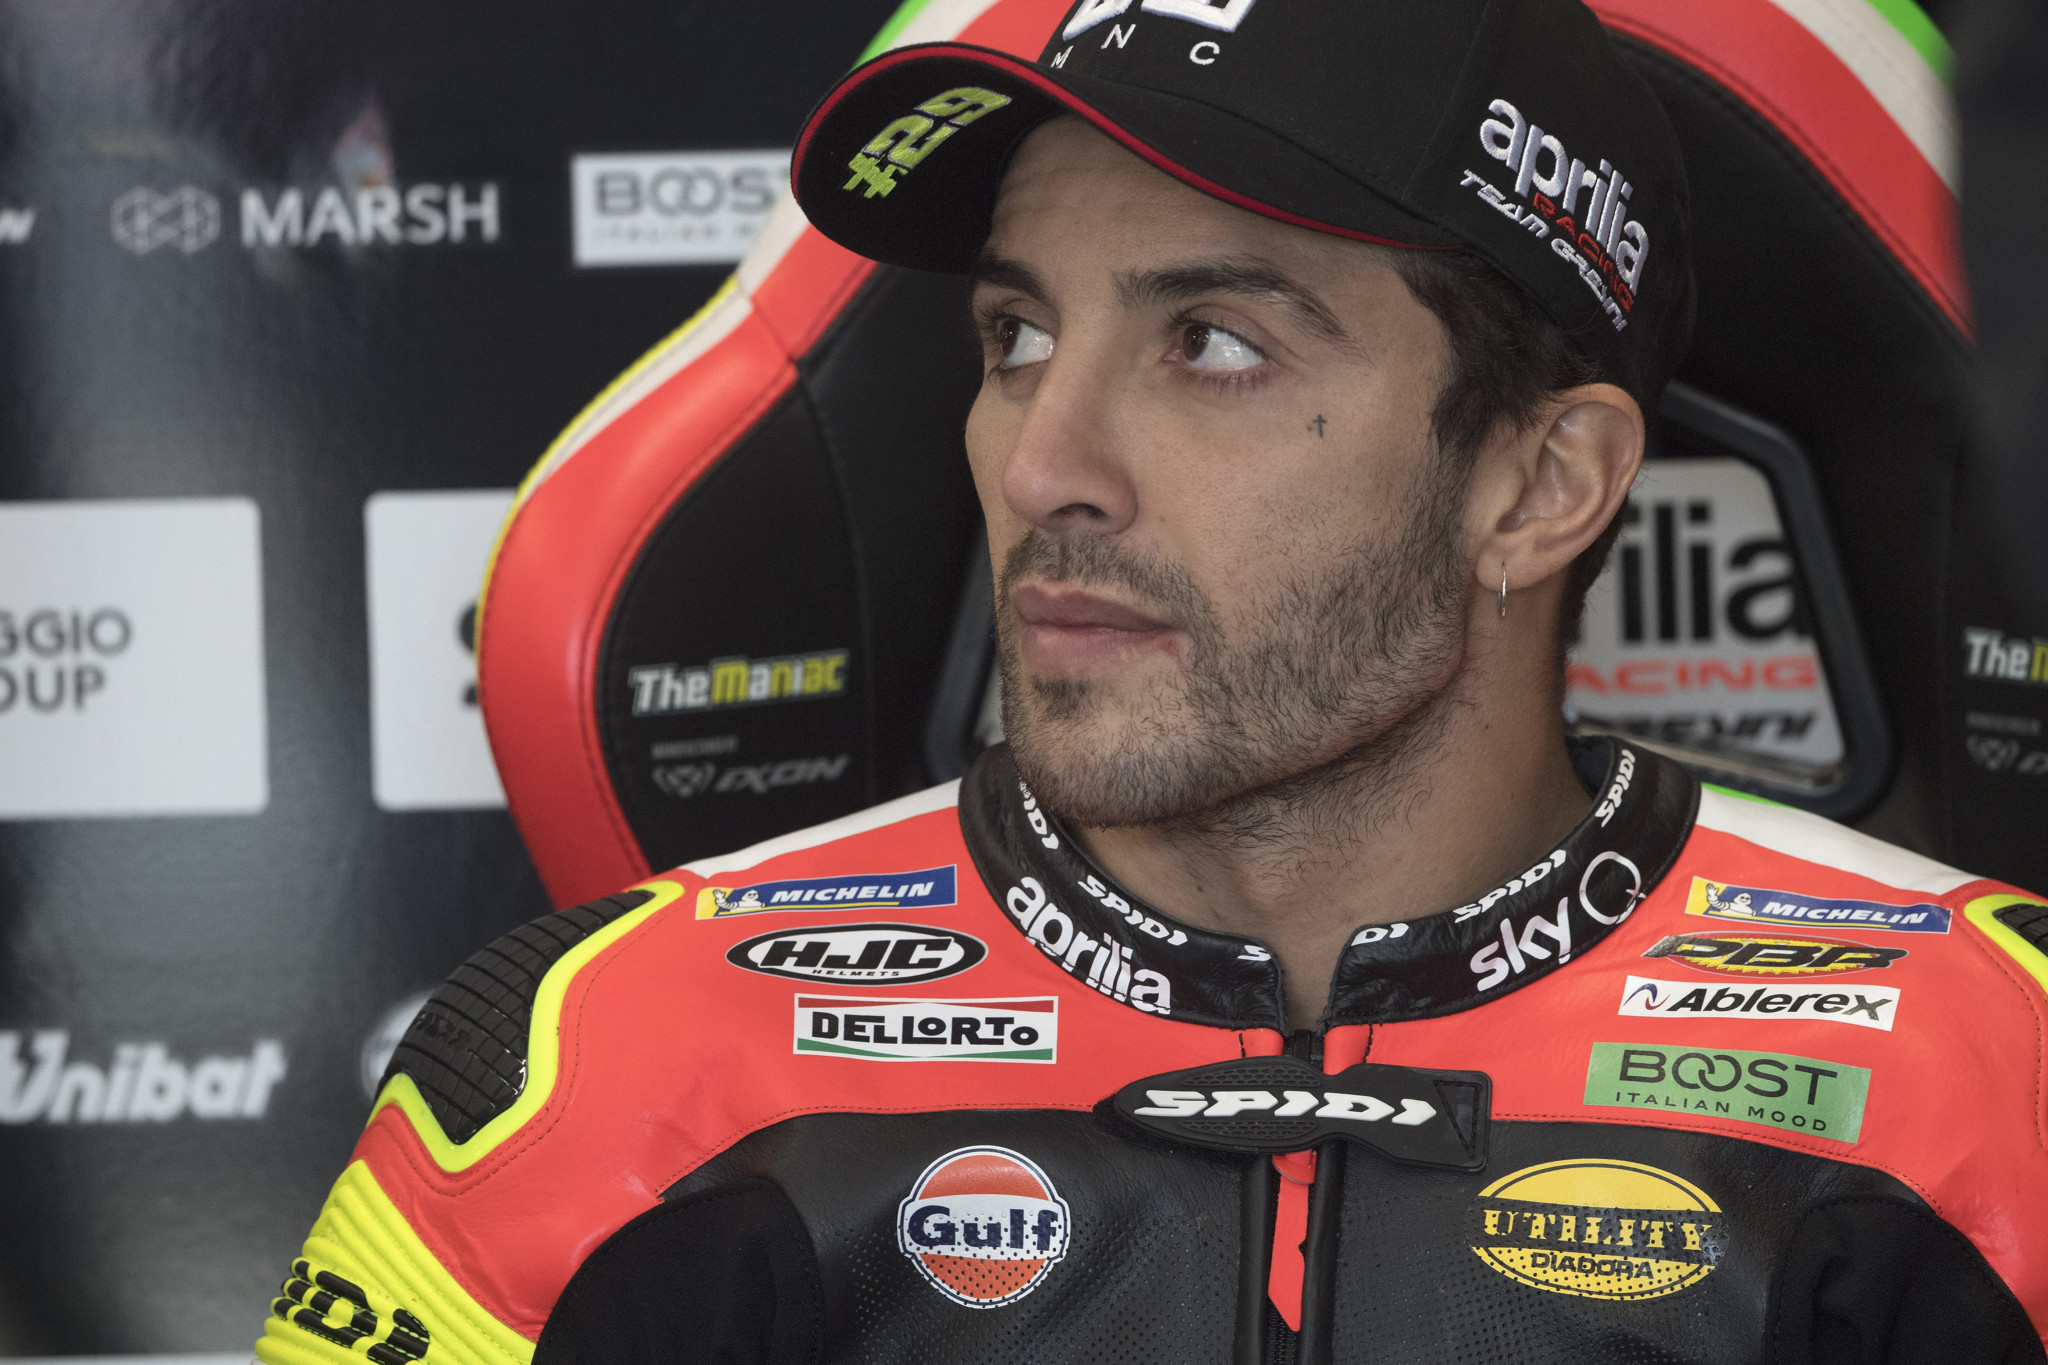 Andrea Iannone and his team are set to appeal the decision ©Getty Images